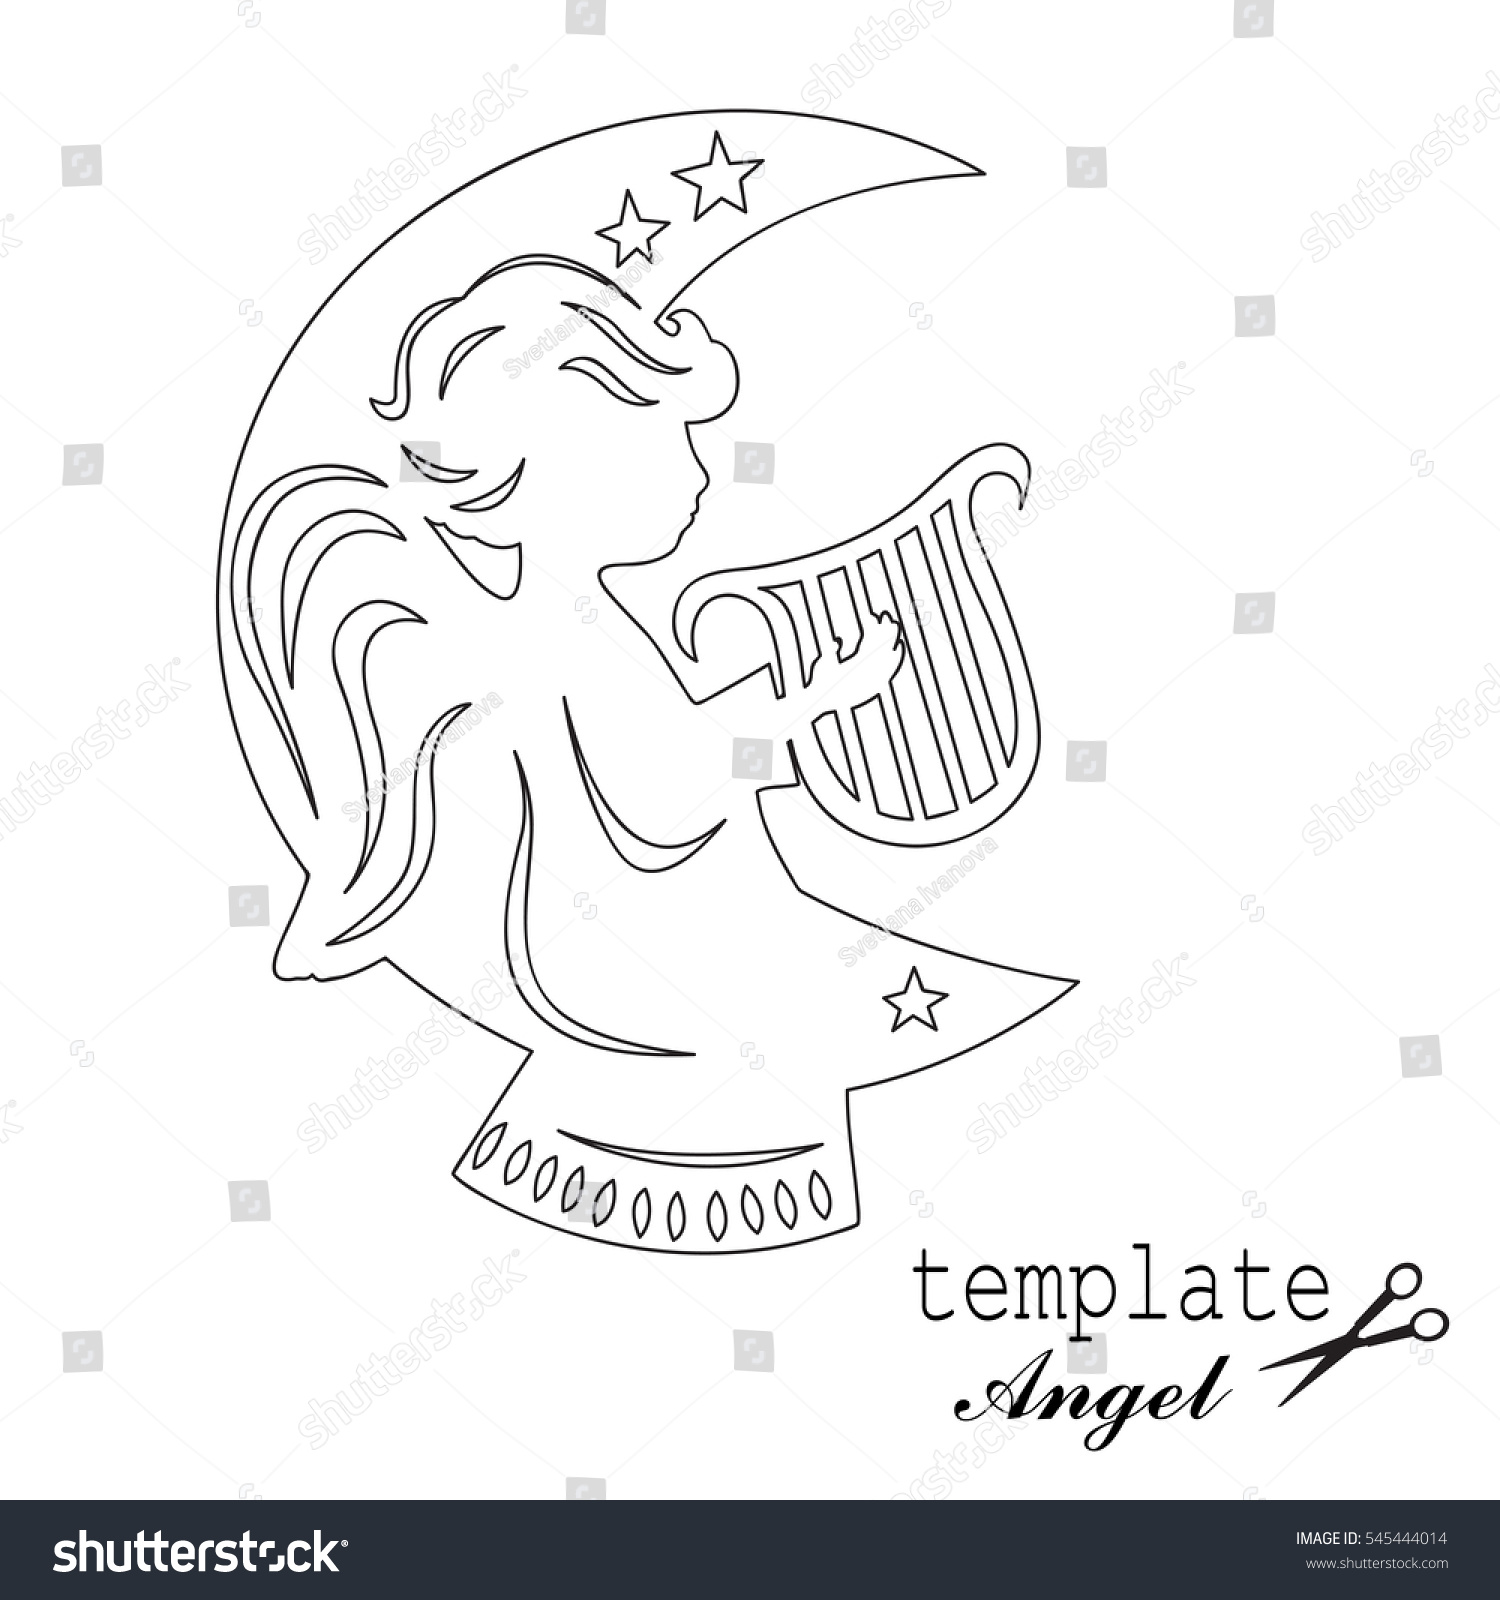 Template Angel Cut Laser Engraved Stencil Stock Vector 545444014